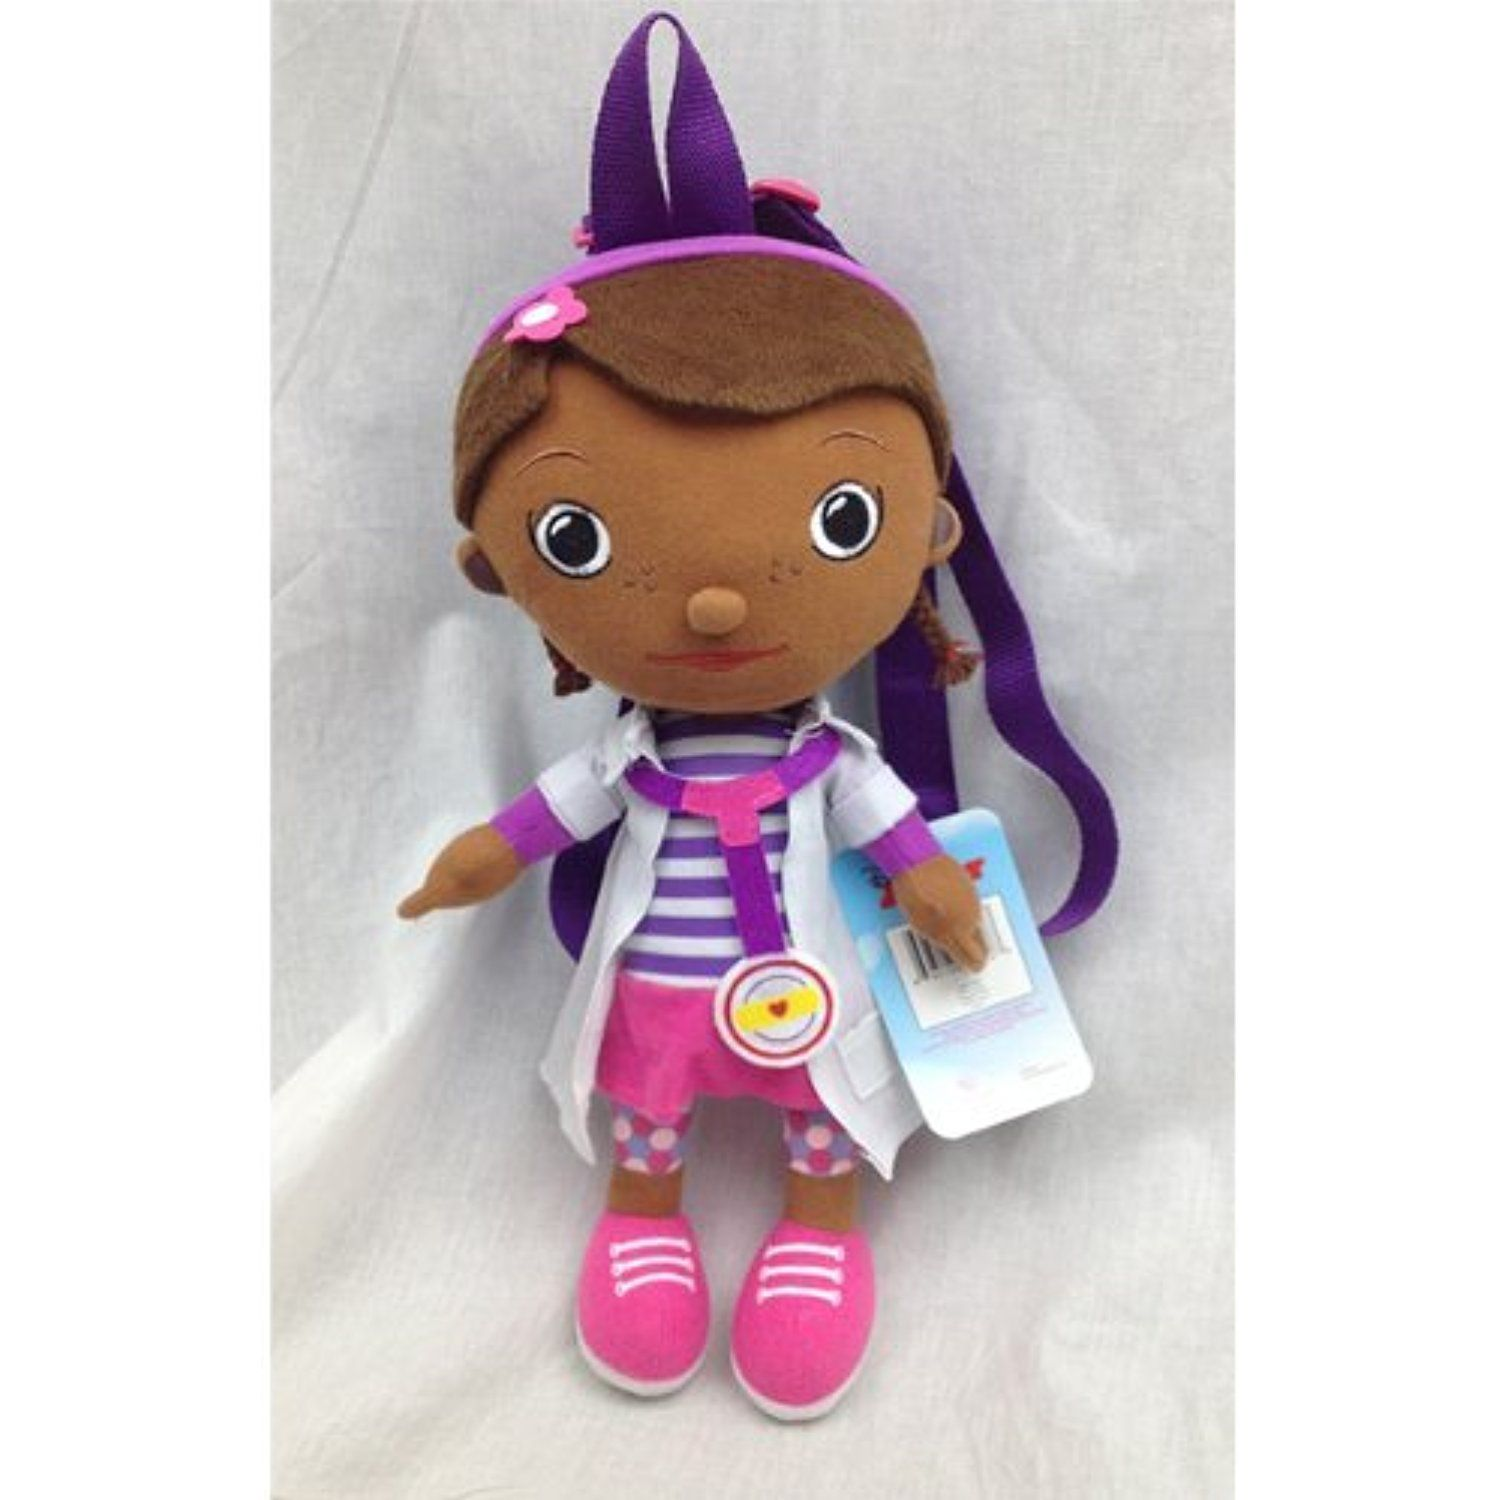 a2bcd76636e Disney Doc Mcstuffins Toddler Plush Backpack 16 Inch Doll   Find out more  about the great